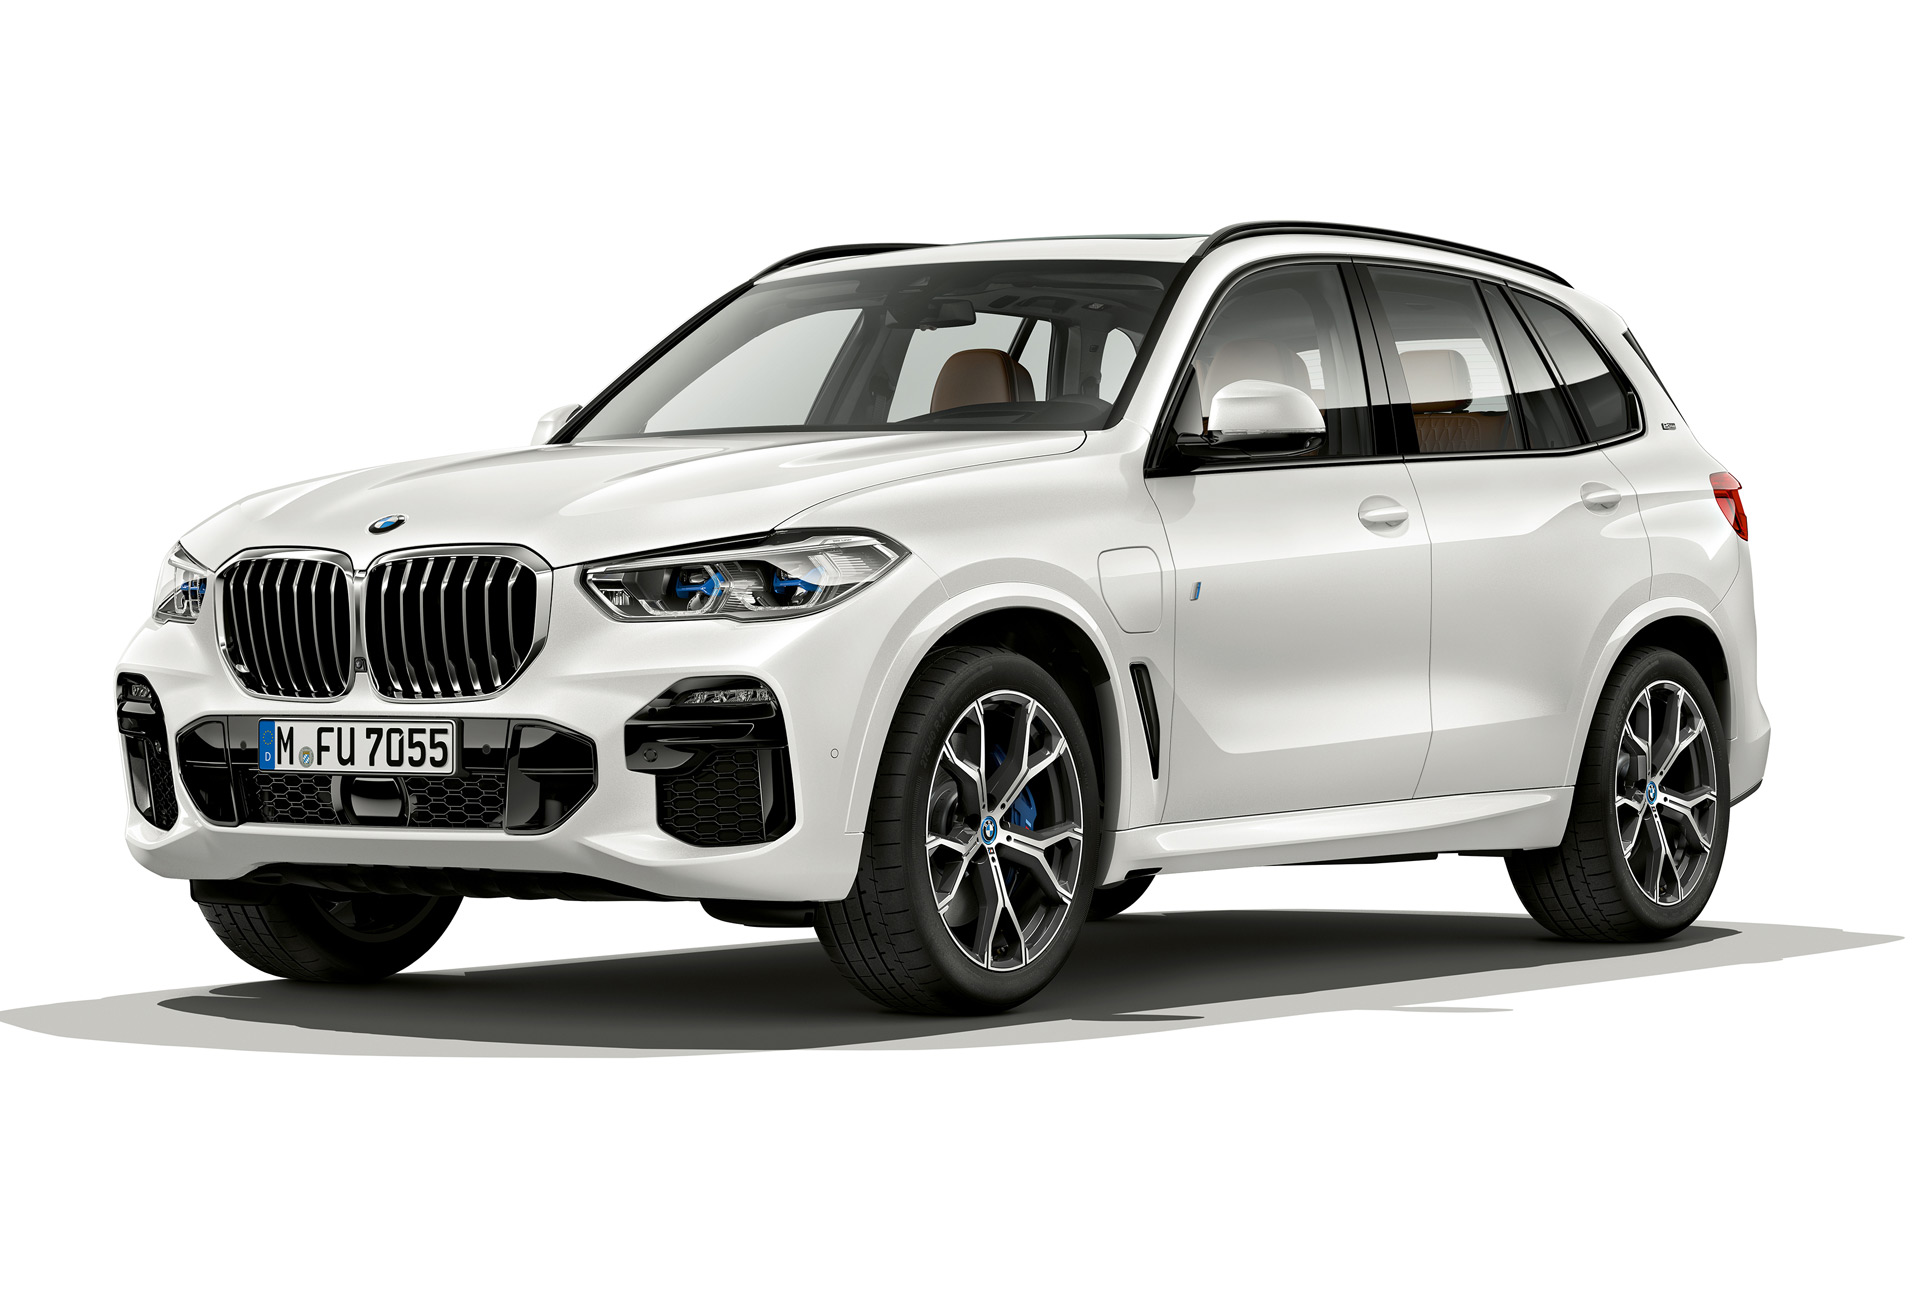 2021 BMW X5 Will Introduce Electric Version >> 2021 Bmw X5 Xdrive45e Iperformance Plug In Hybrid Promises More